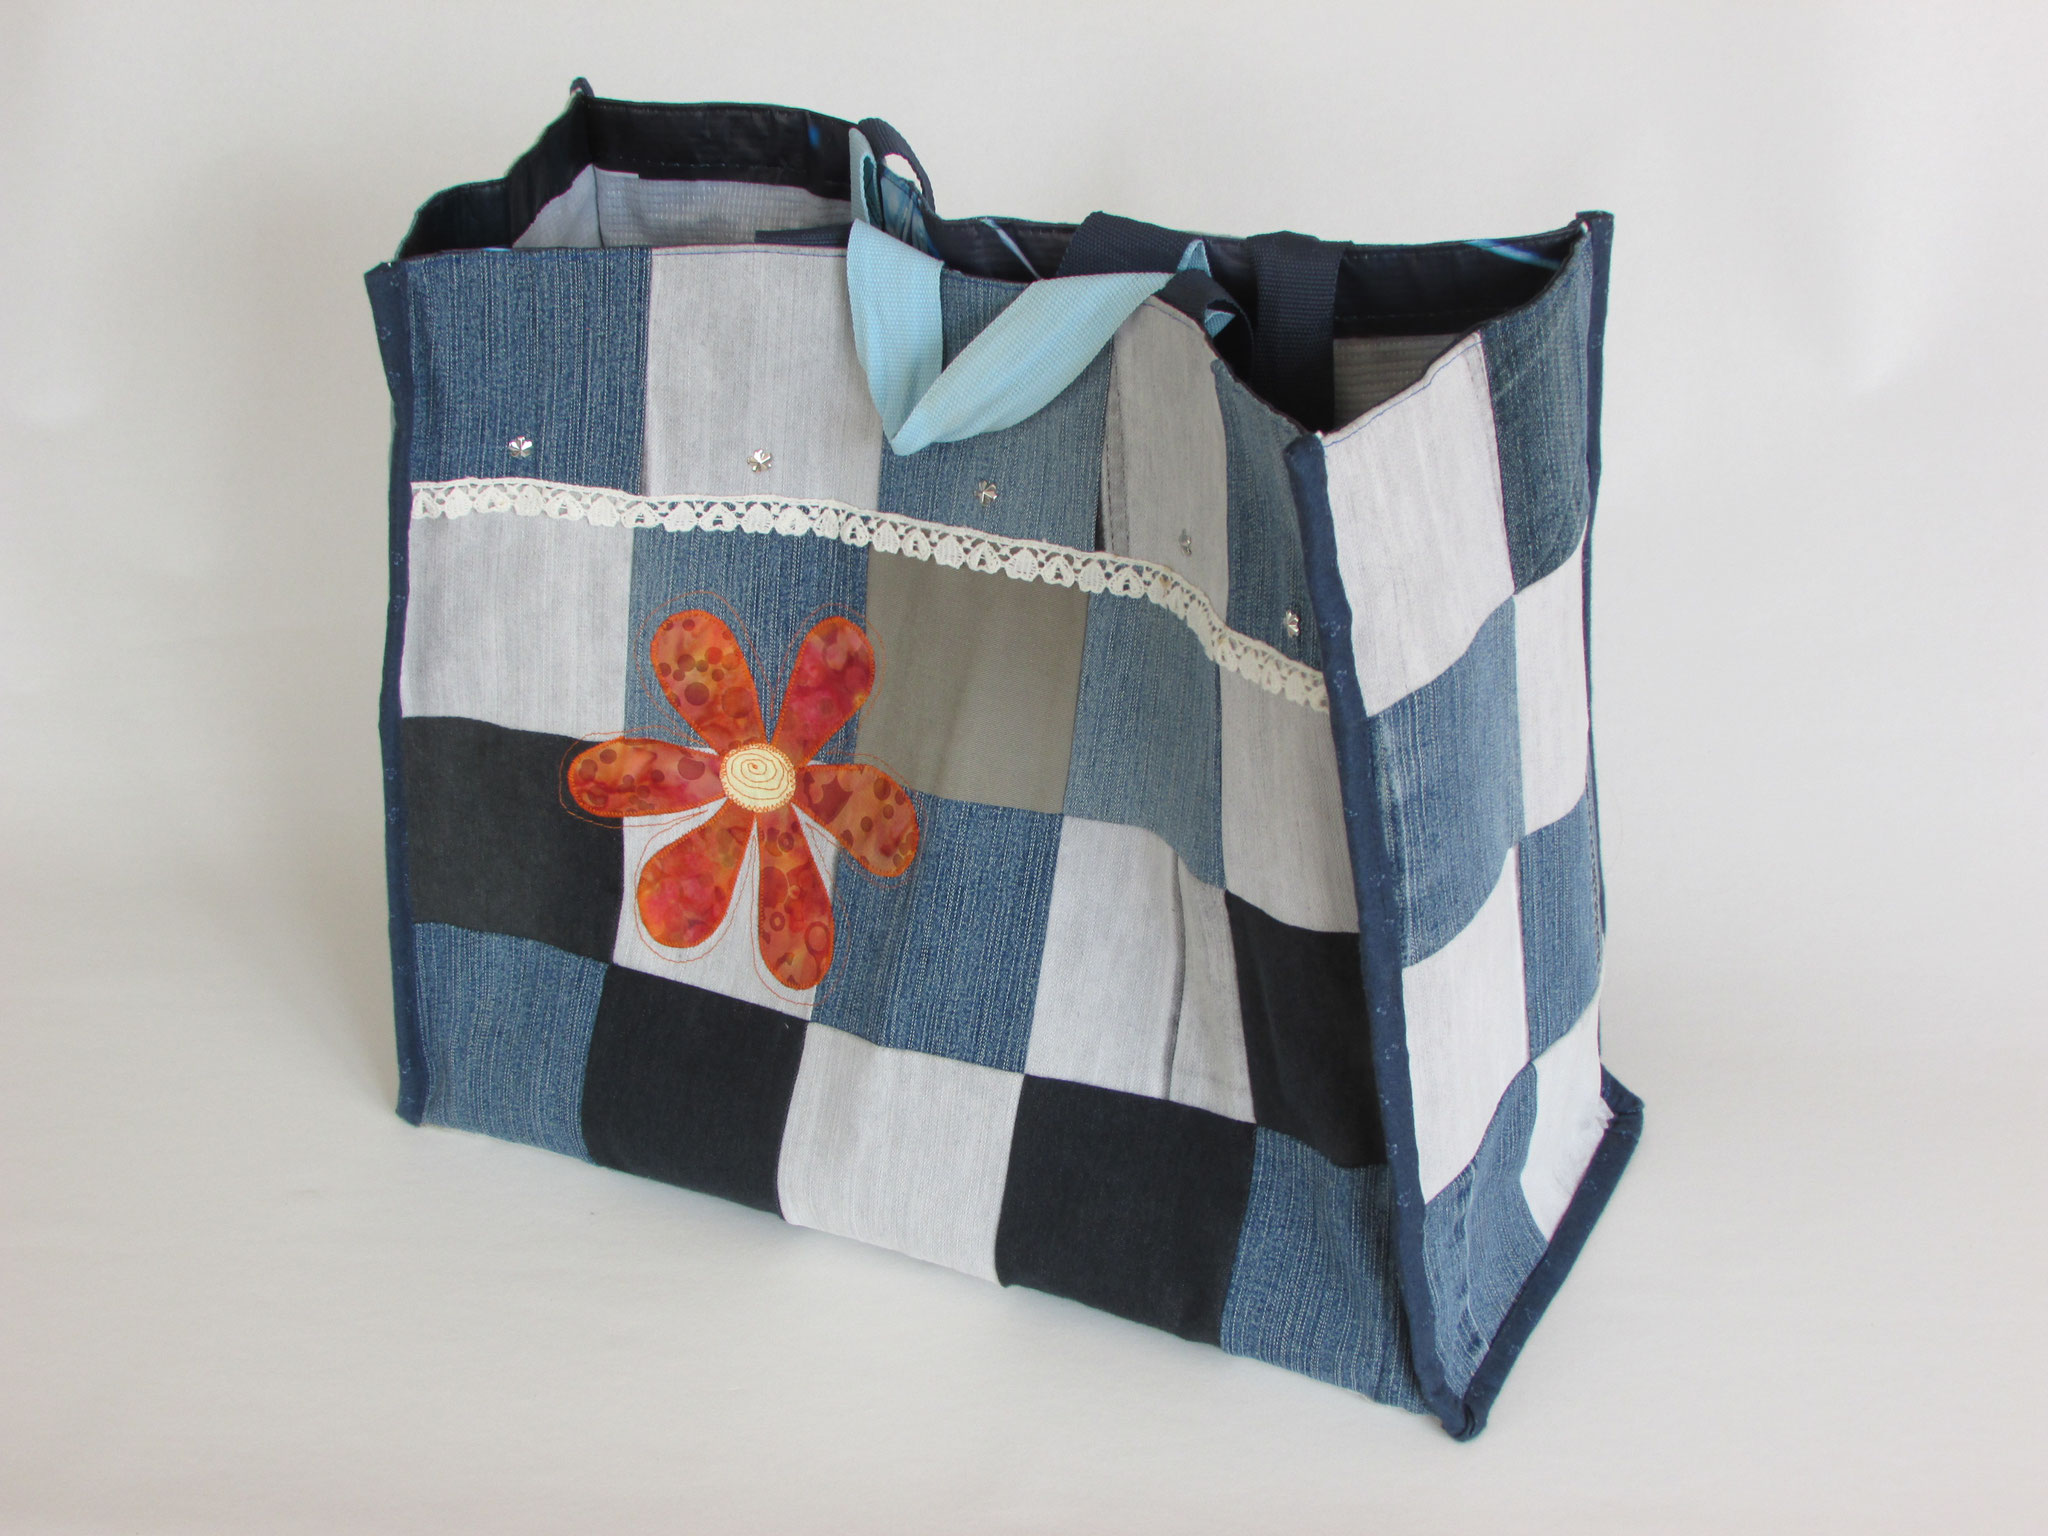 Shoppingtasche Jeans